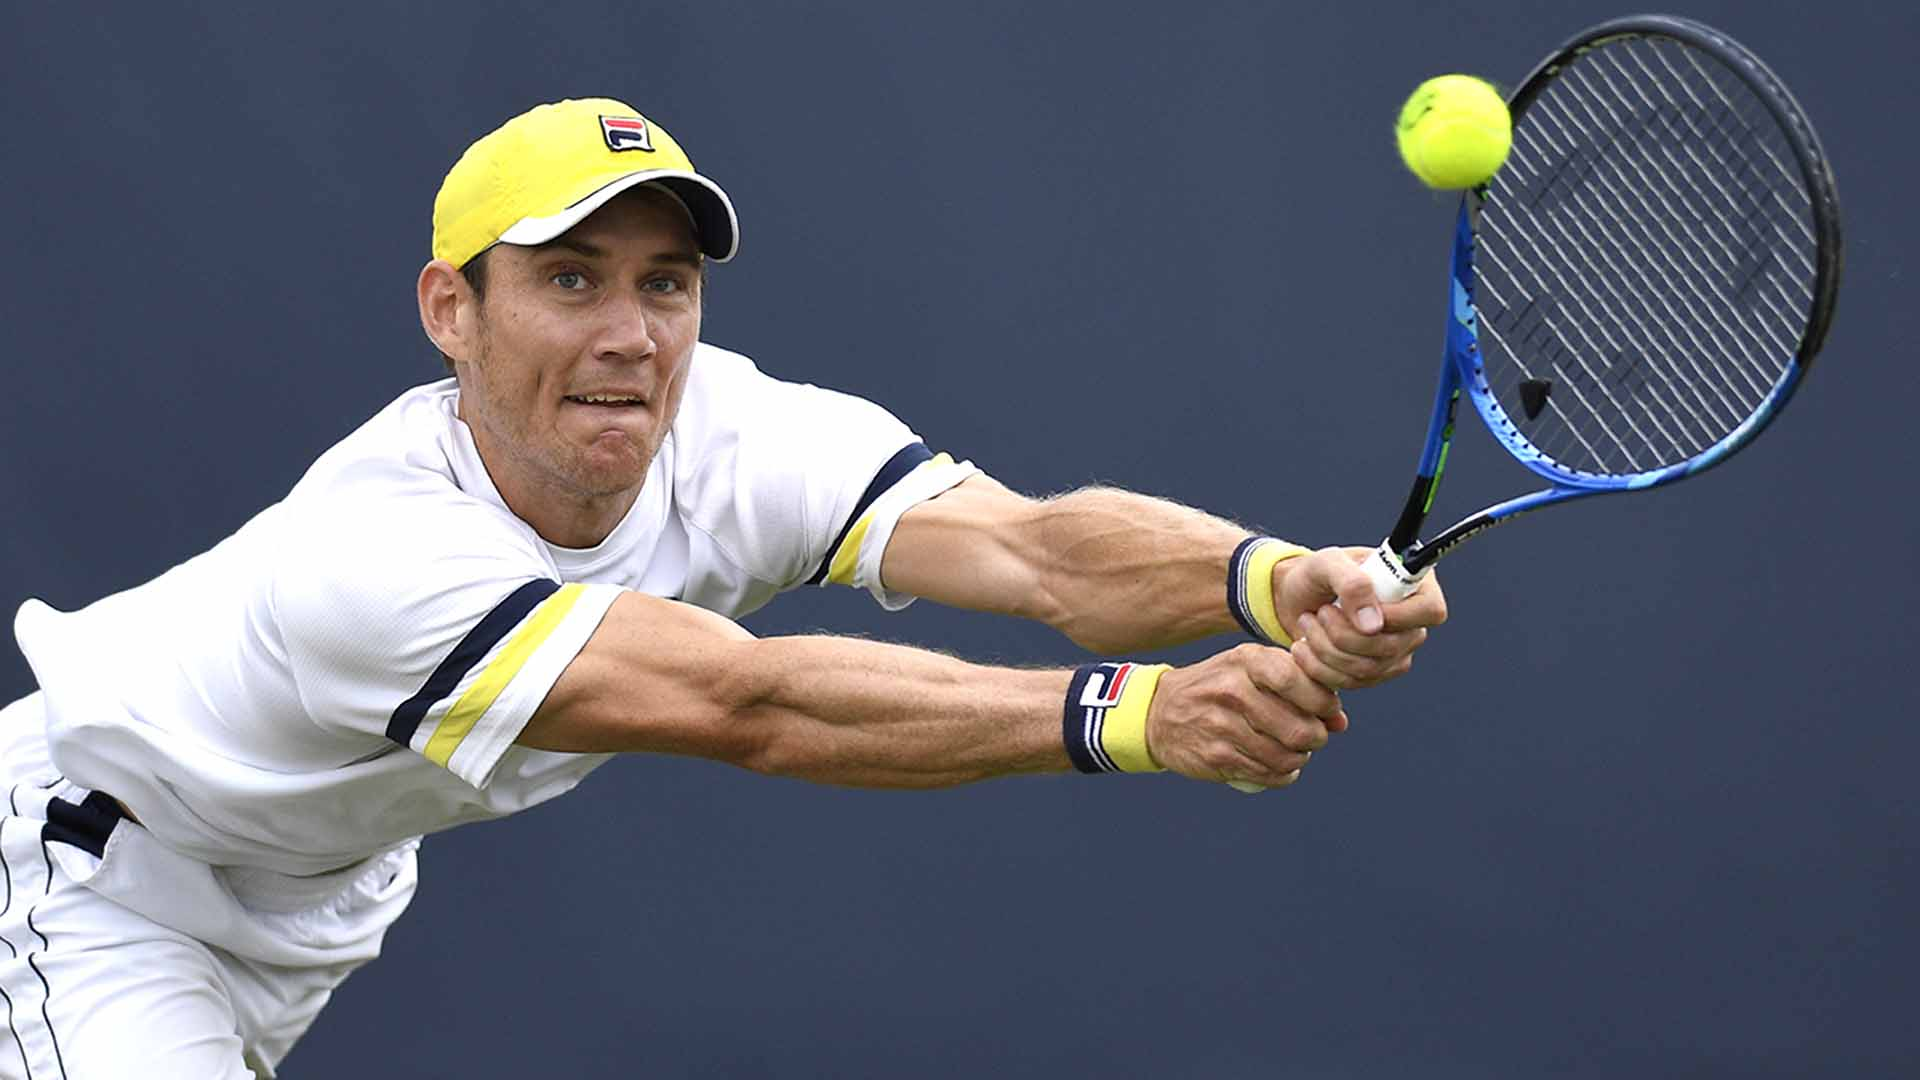 ���� Matthew Ebden stuns defending champion Gilles Muller at the @LibemaOpen.  Read More ▶️ https://t.co/PQJIioLU6N https://t.co/Z5P8Pc6u0P